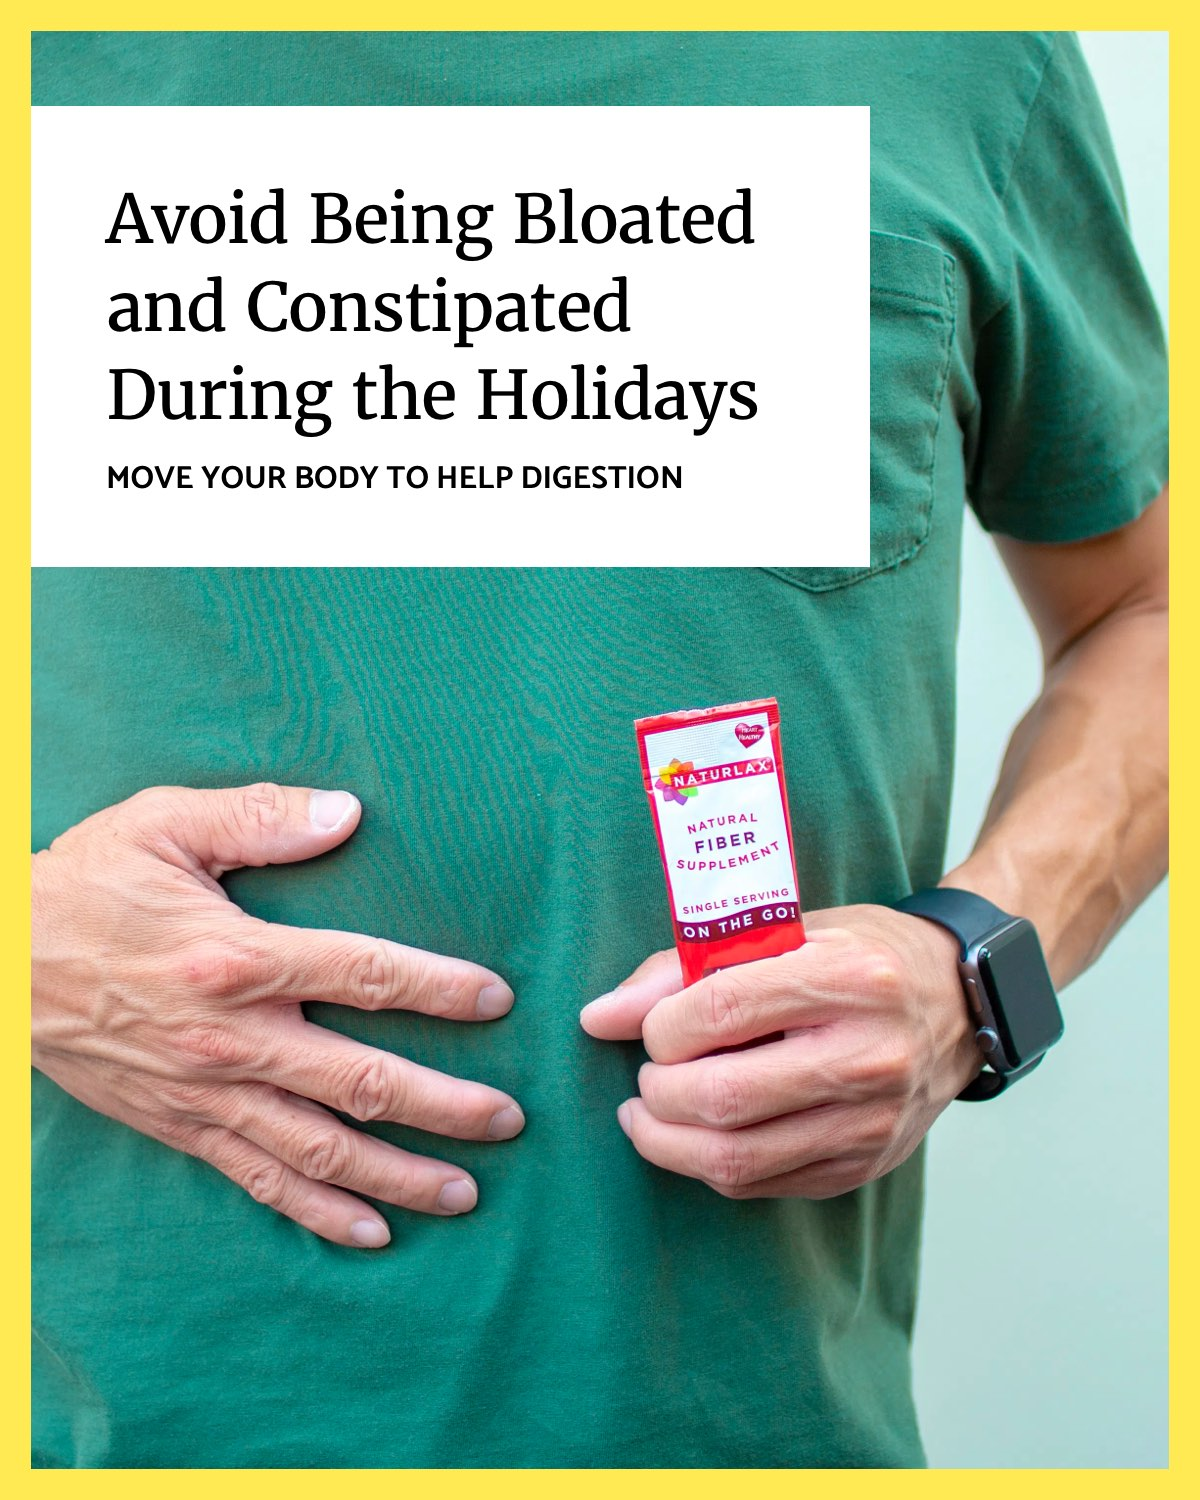 Avoid Being Bloated and Constipated During the Holidays